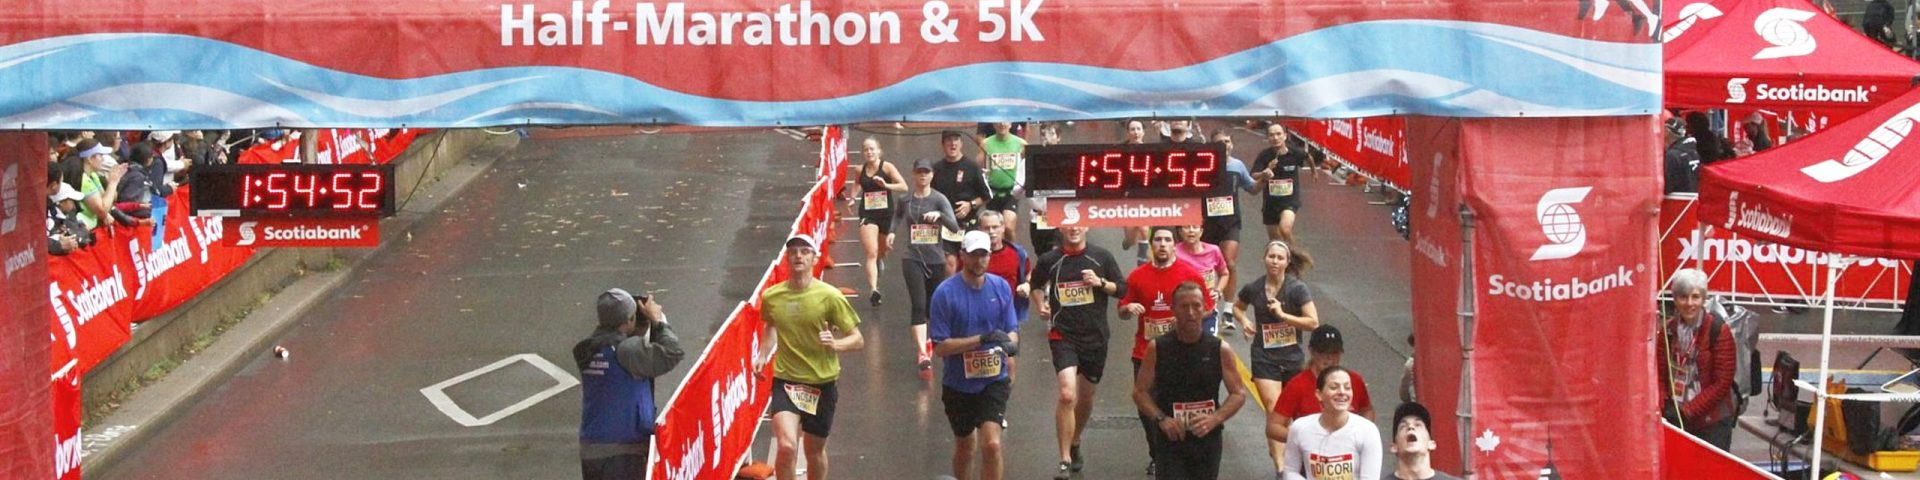 Finishing my first half marathon at the Scotiabank Waterfront marathon in 2012, the first part of my journey from couch to half-ironman